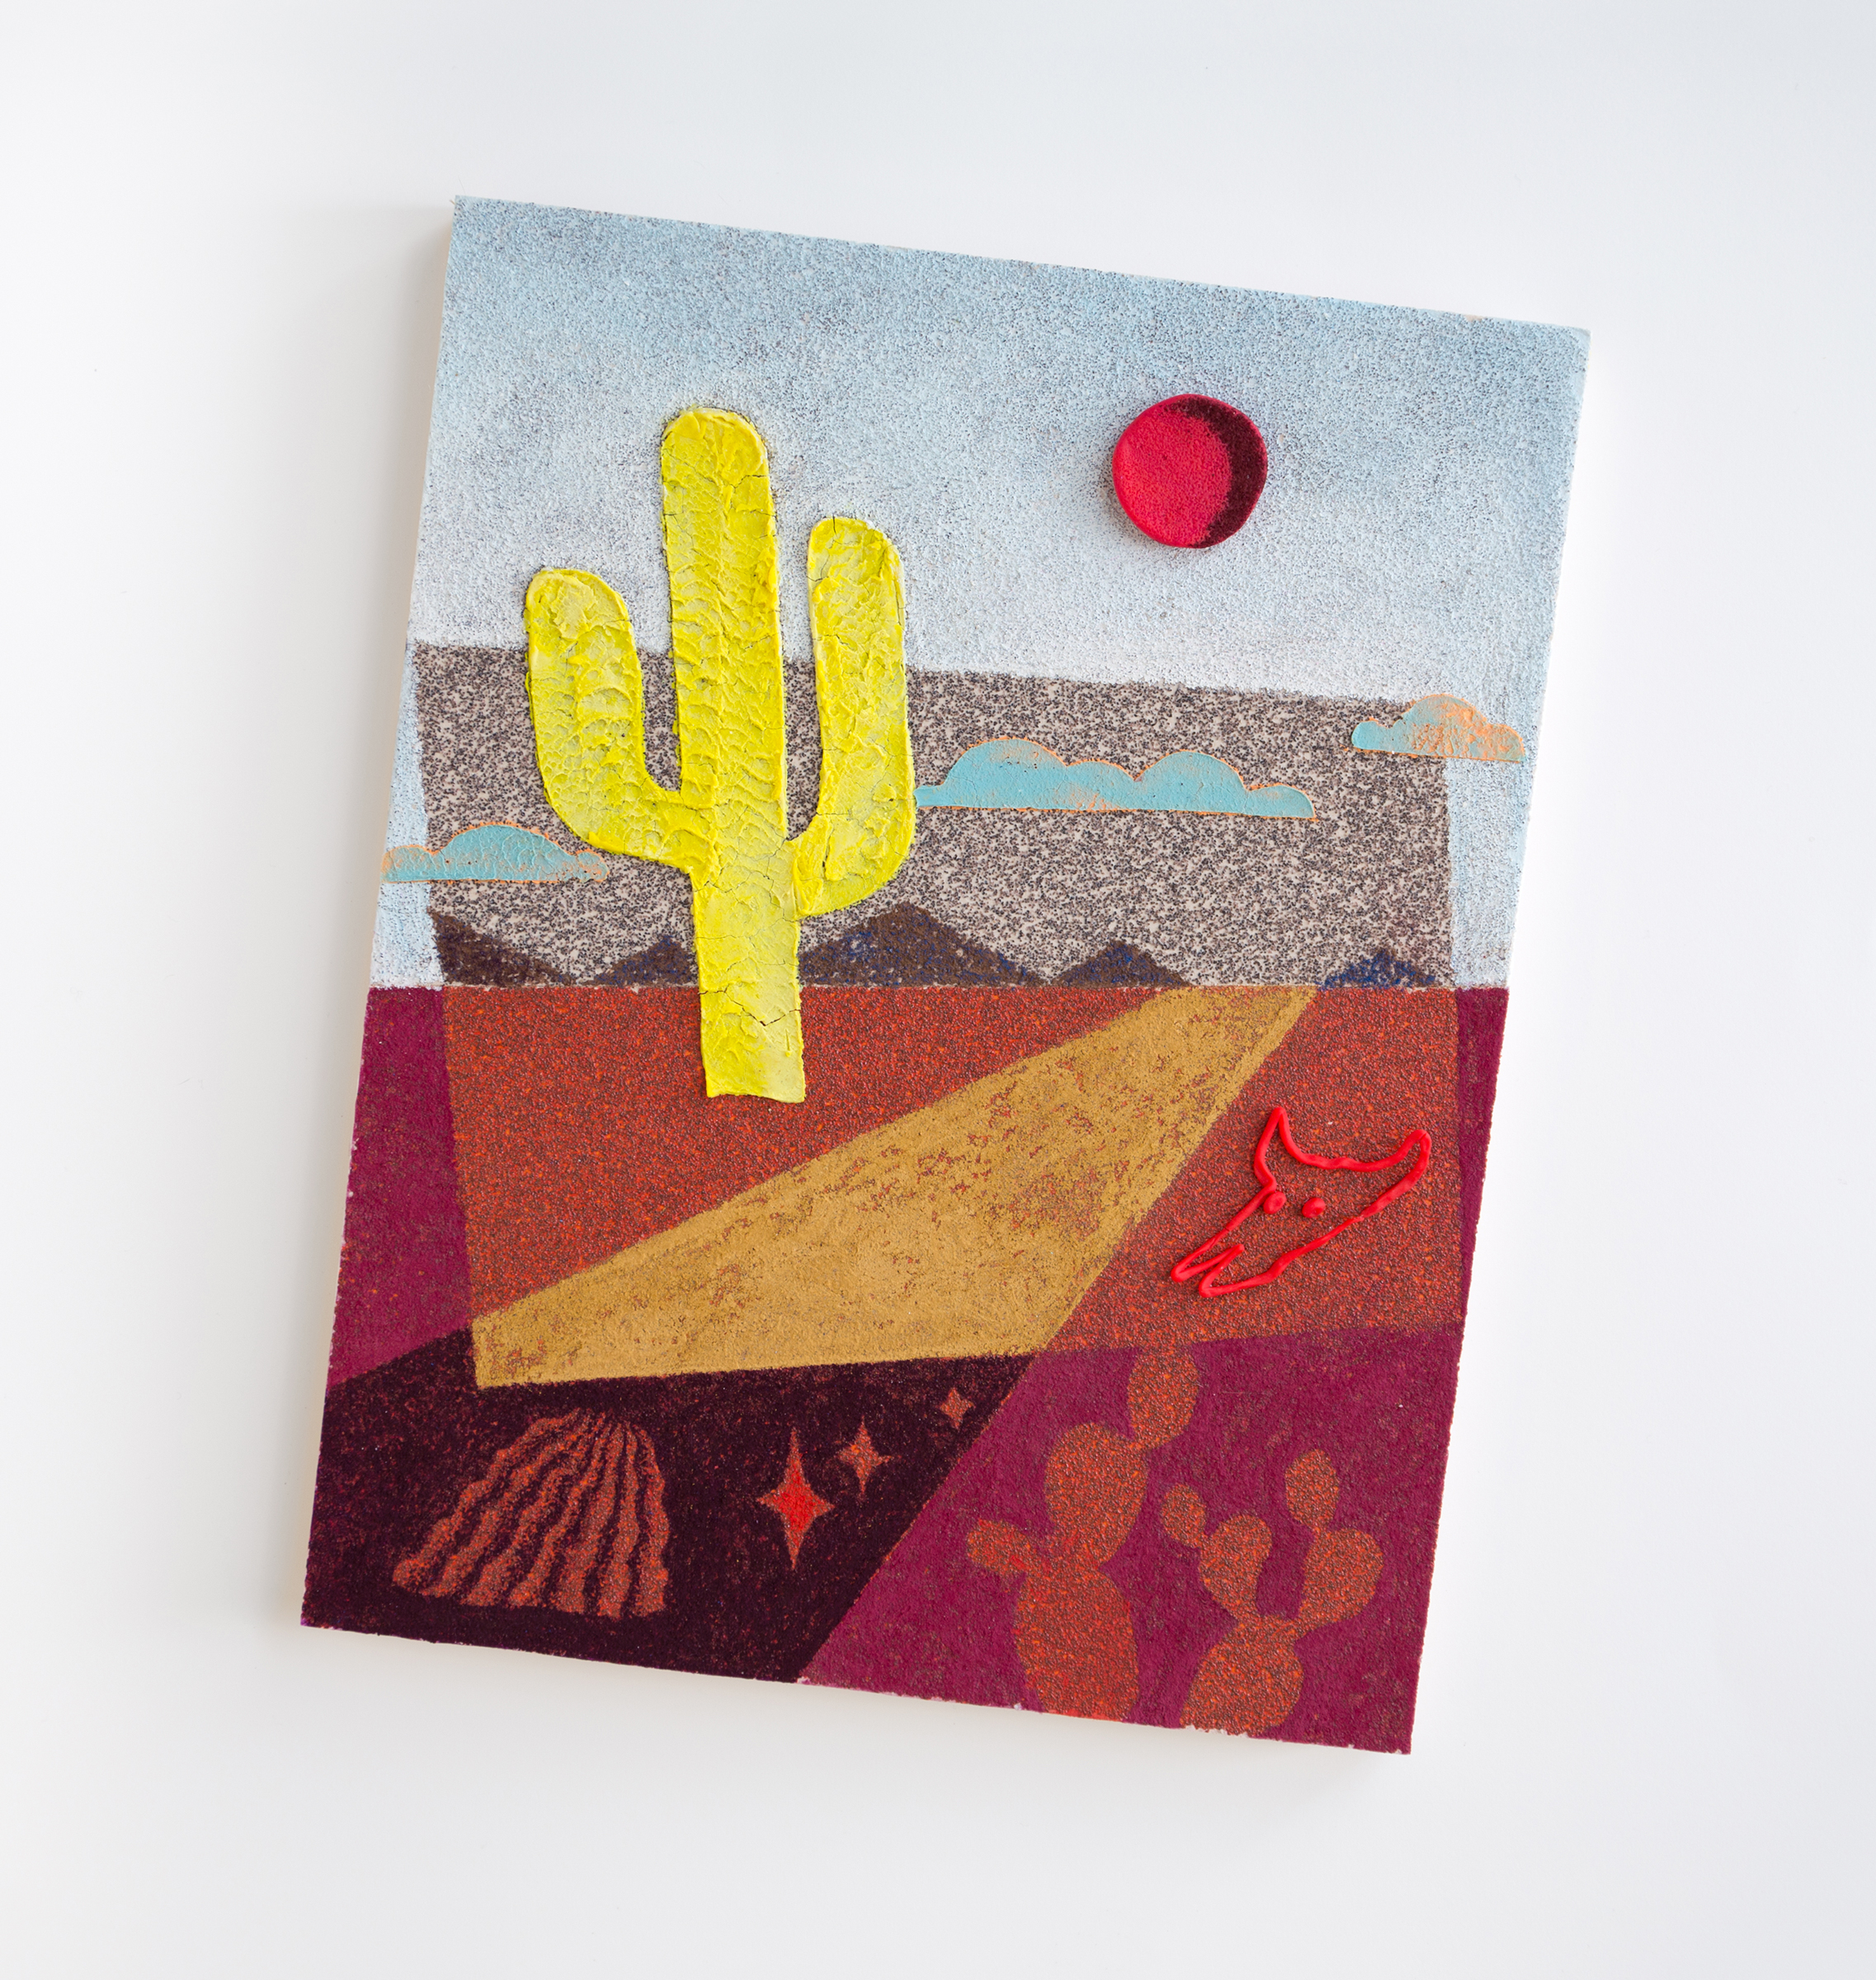 """Holbein the Range (where the deer and the antelope play)  2016 Sandpaper, colored pencil,and play-doh on panel 15 1/4"""" x 12 1/2"""" x 1/2"""""""